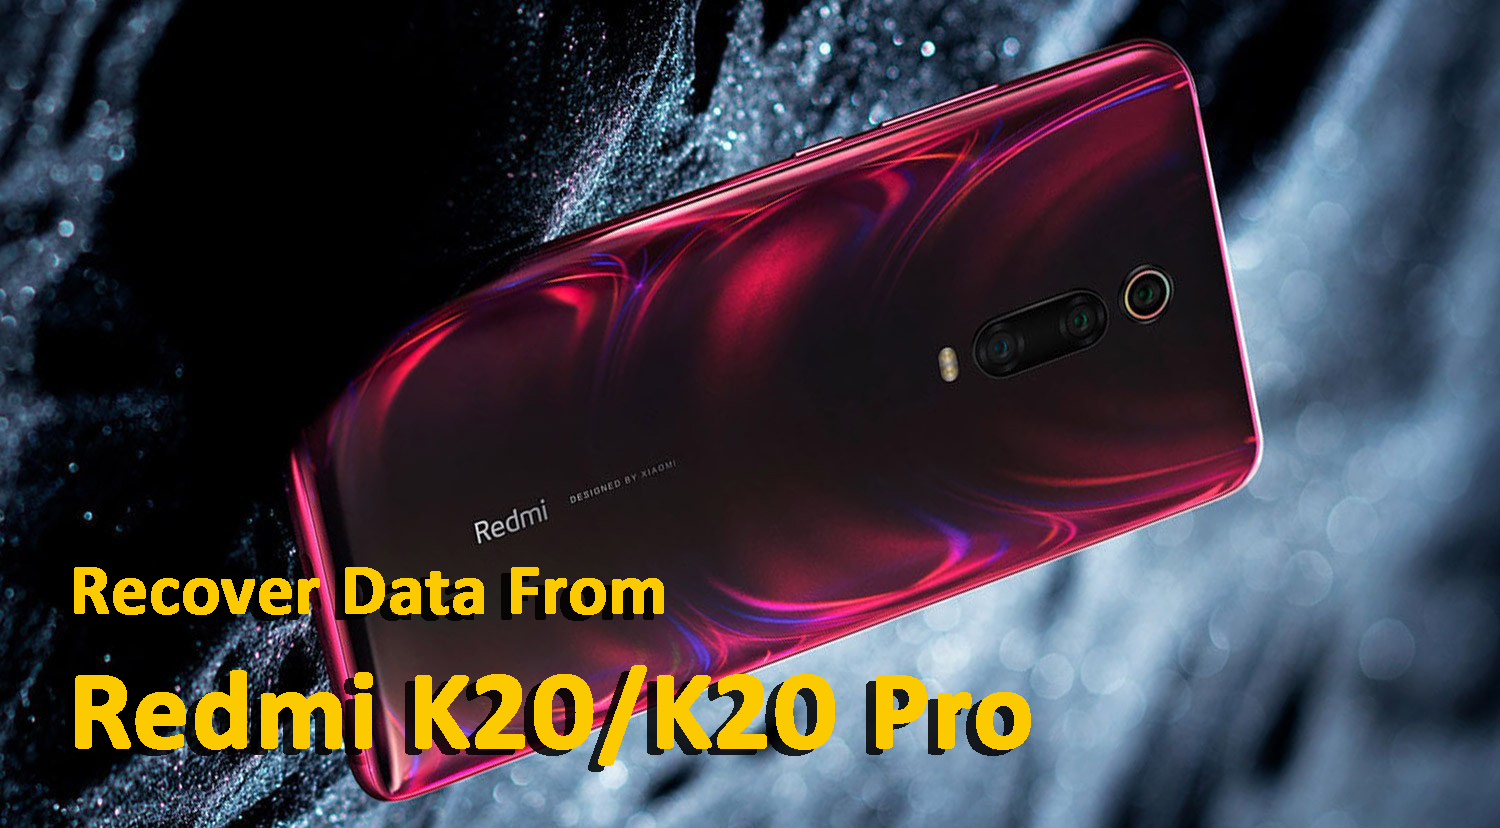 Recover Data From Redmi K20/K20 Pro